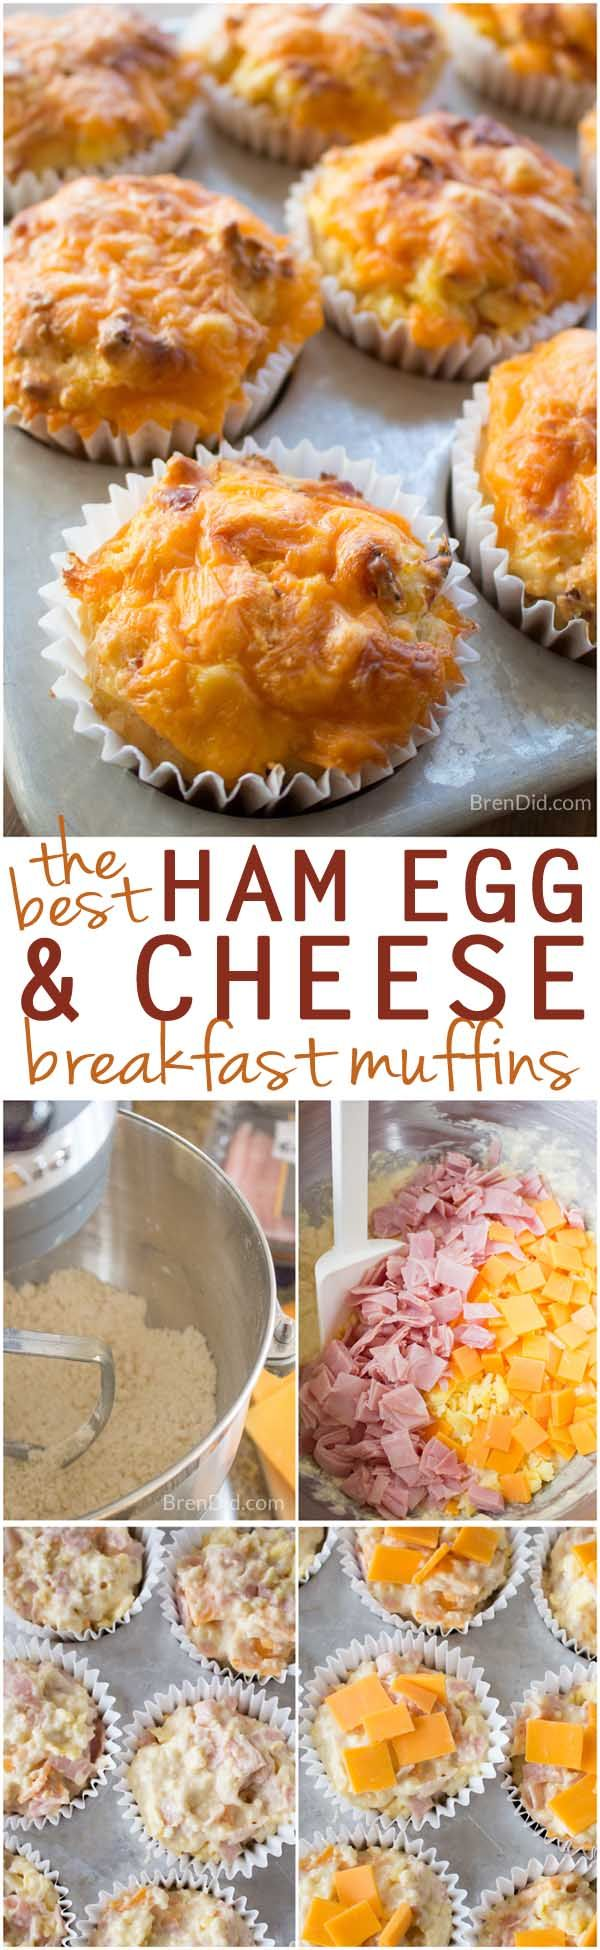 easy breakfast muffins, ham, egg, and cheese biscuits, ham and egg breakfast, easy breakfast, breakfast muffins, Perfect for busy mornings when you don't have time to cook but want to serve a hot, homemade meal. #BeyondTheSandwich ad @Walmart via @brendidblog